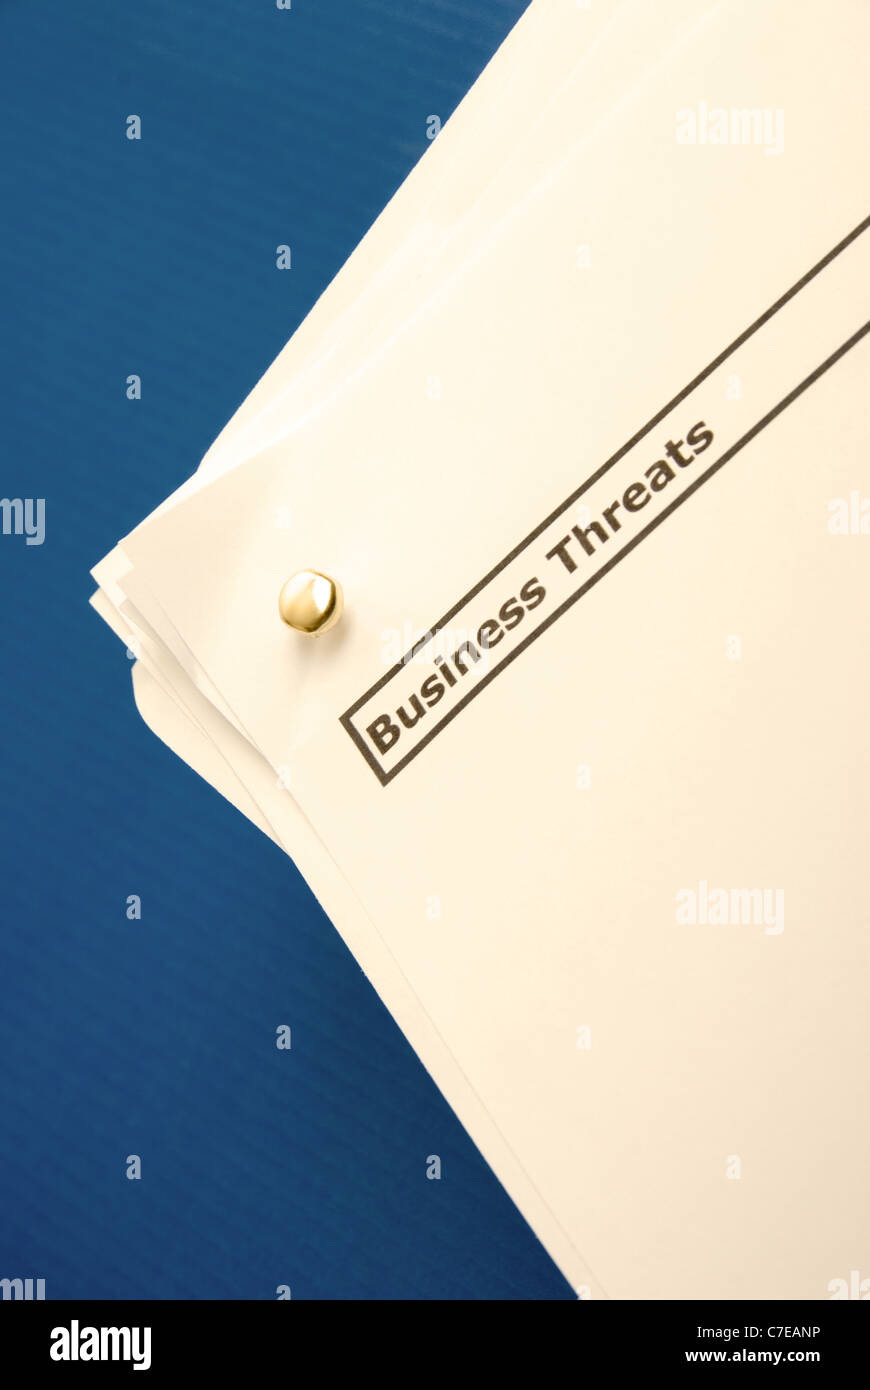 Business documents with with the heading Business threats - S.w.o.t analysis. - Stock Image